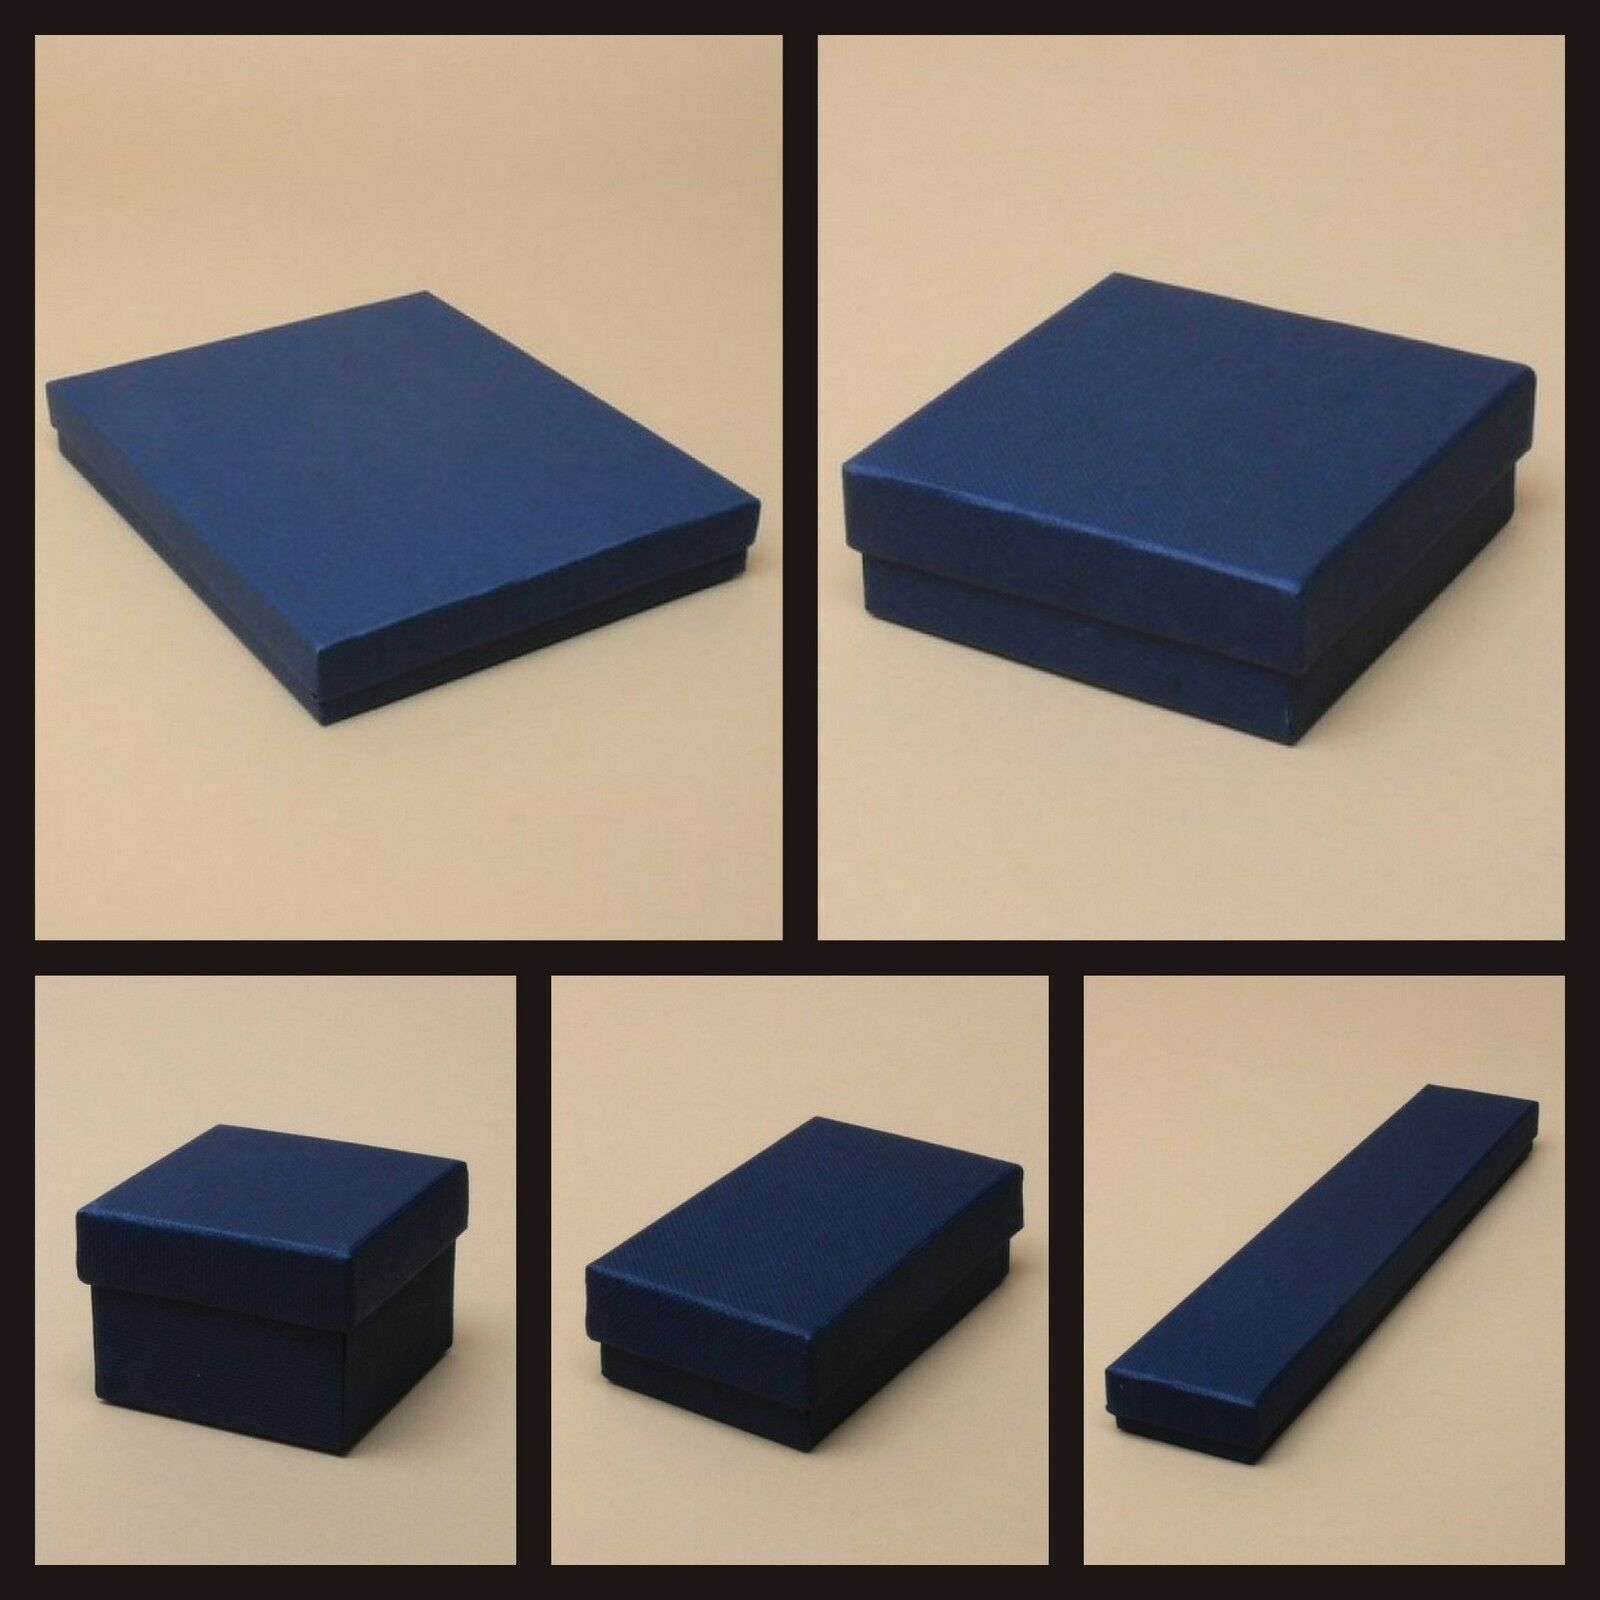 Jewellery - NAVY BLUE JEWELLERY GIFT BOX RING NECKLACE BRACELET EARRINGS WATCH SMALL PRESENT